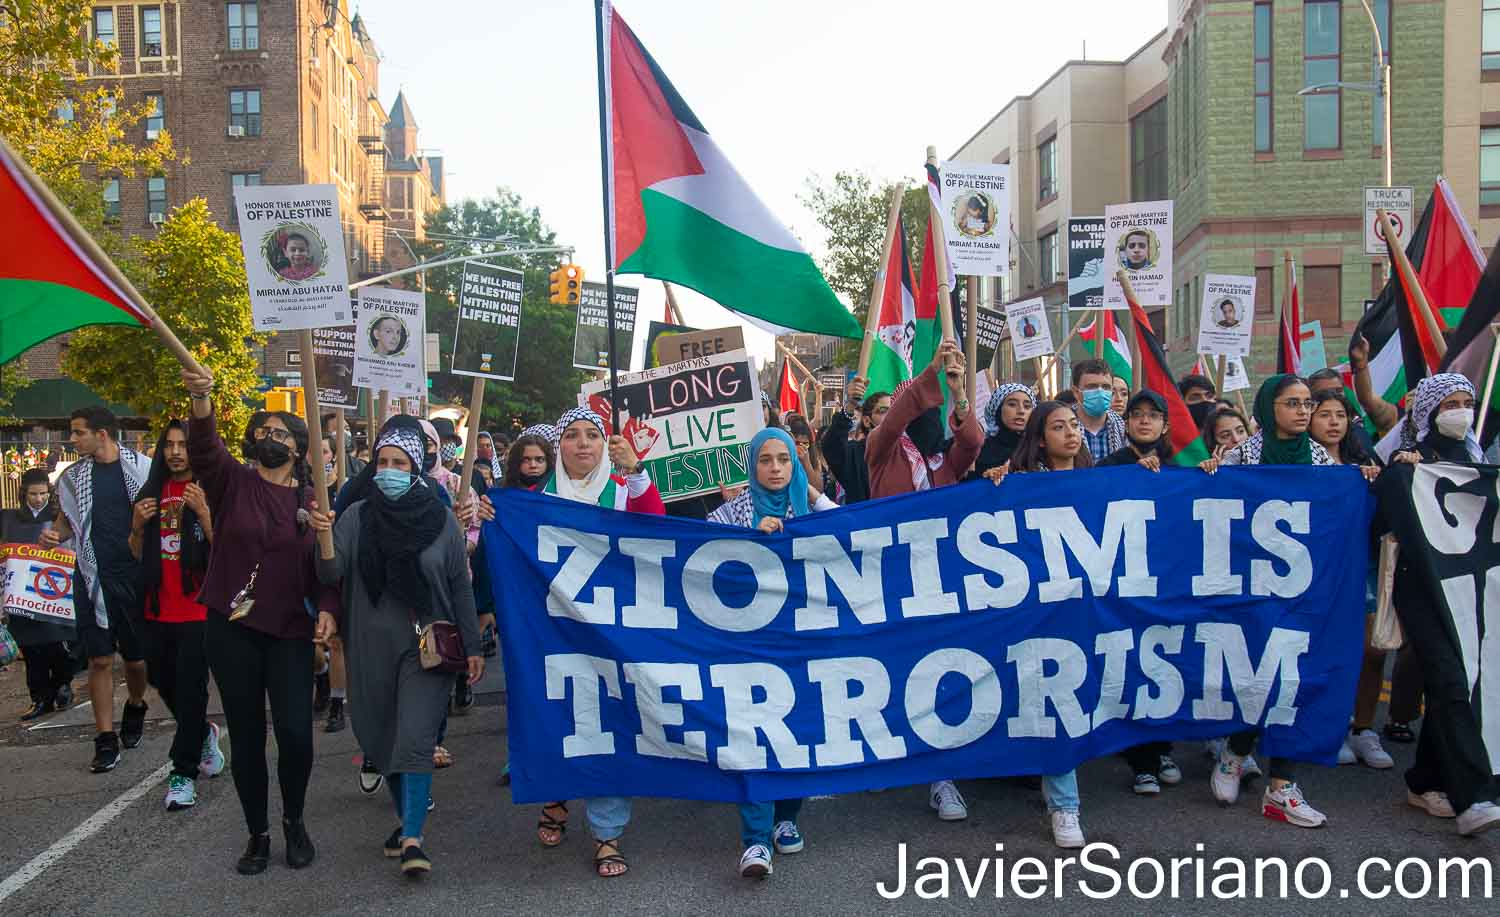 """Saturday, July 31, 2021. Brooklyn, New York City - Memorial, rally and march in Bay Ridge, Brooklyn; New York City, to honor the martyrs of Palestine. THIS PHOTO: Palestinians marching in Bay Ridge. The banner reads, """"ZIONISM IS TERRORISM."""" Photo by Javier Soriano/www.JavierSoriano.com"""